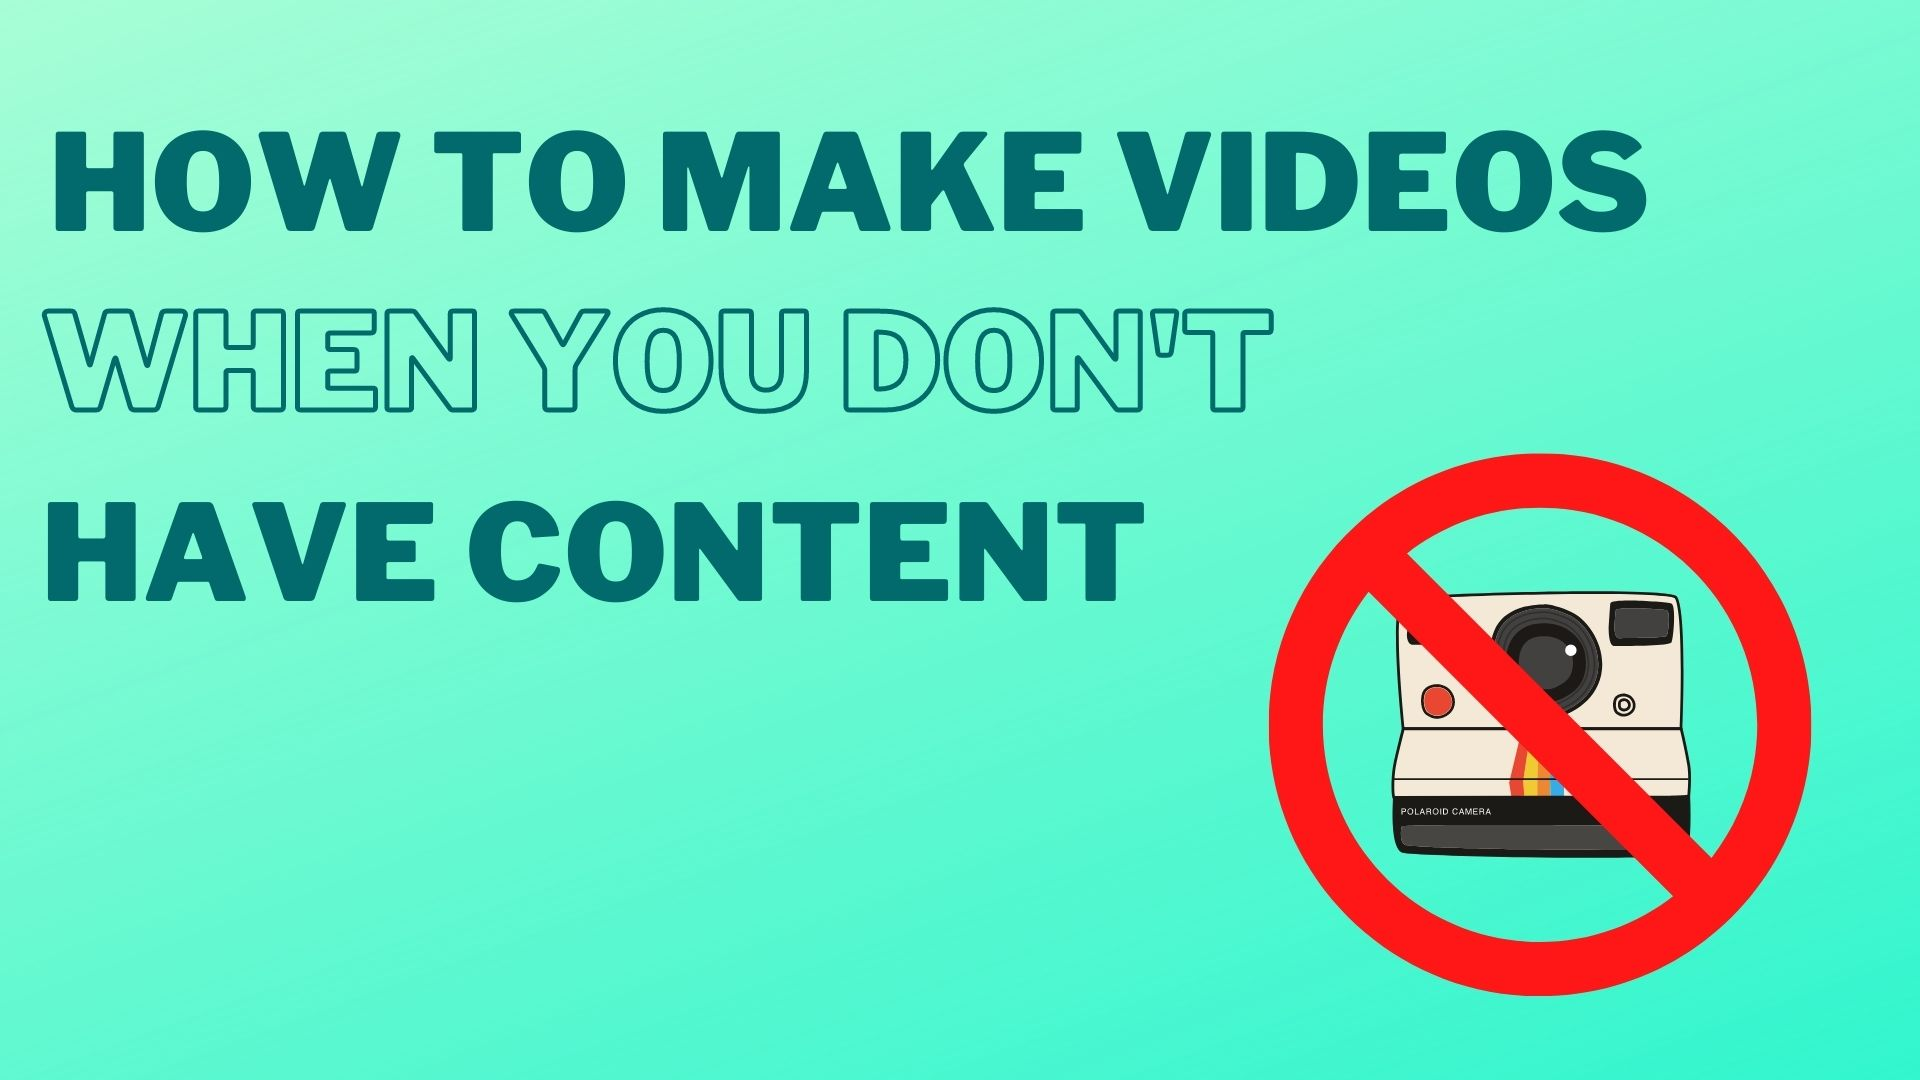 How to make videos when you don't have content